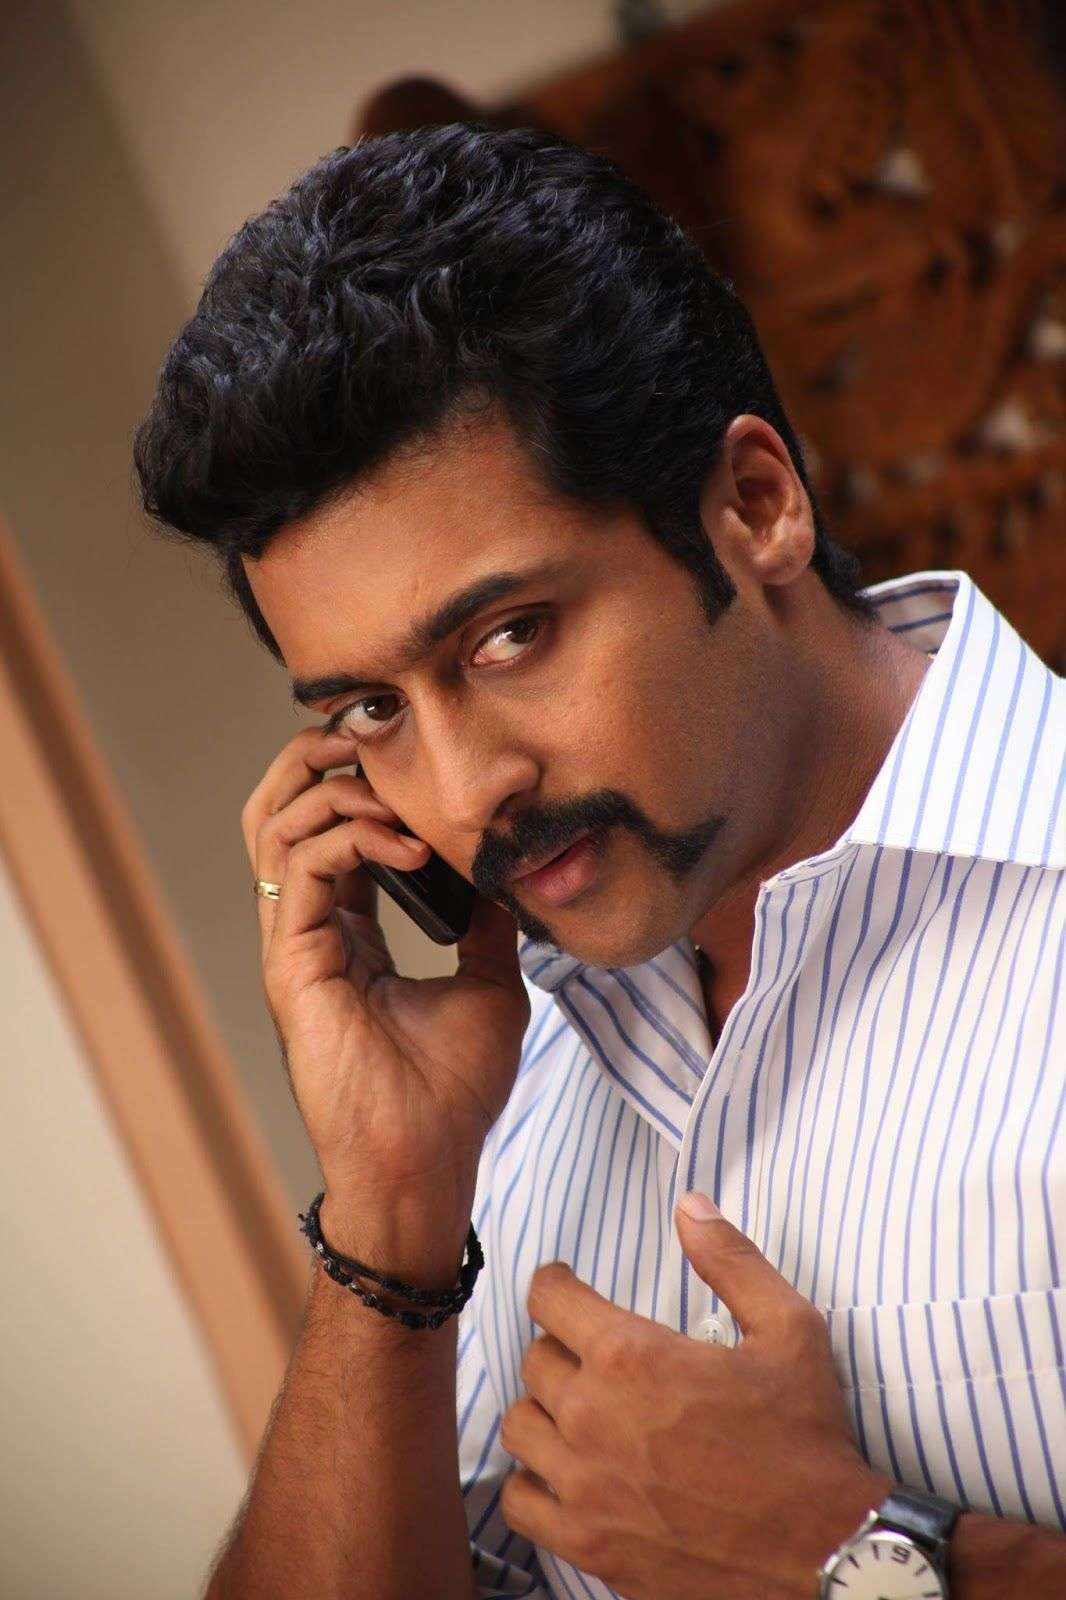 Singam 2 singamyamudu2 exclusive hd images actor surya masss singam 2 singamyamudu2 exclusive hd images actor surya masss altavistaventures Images